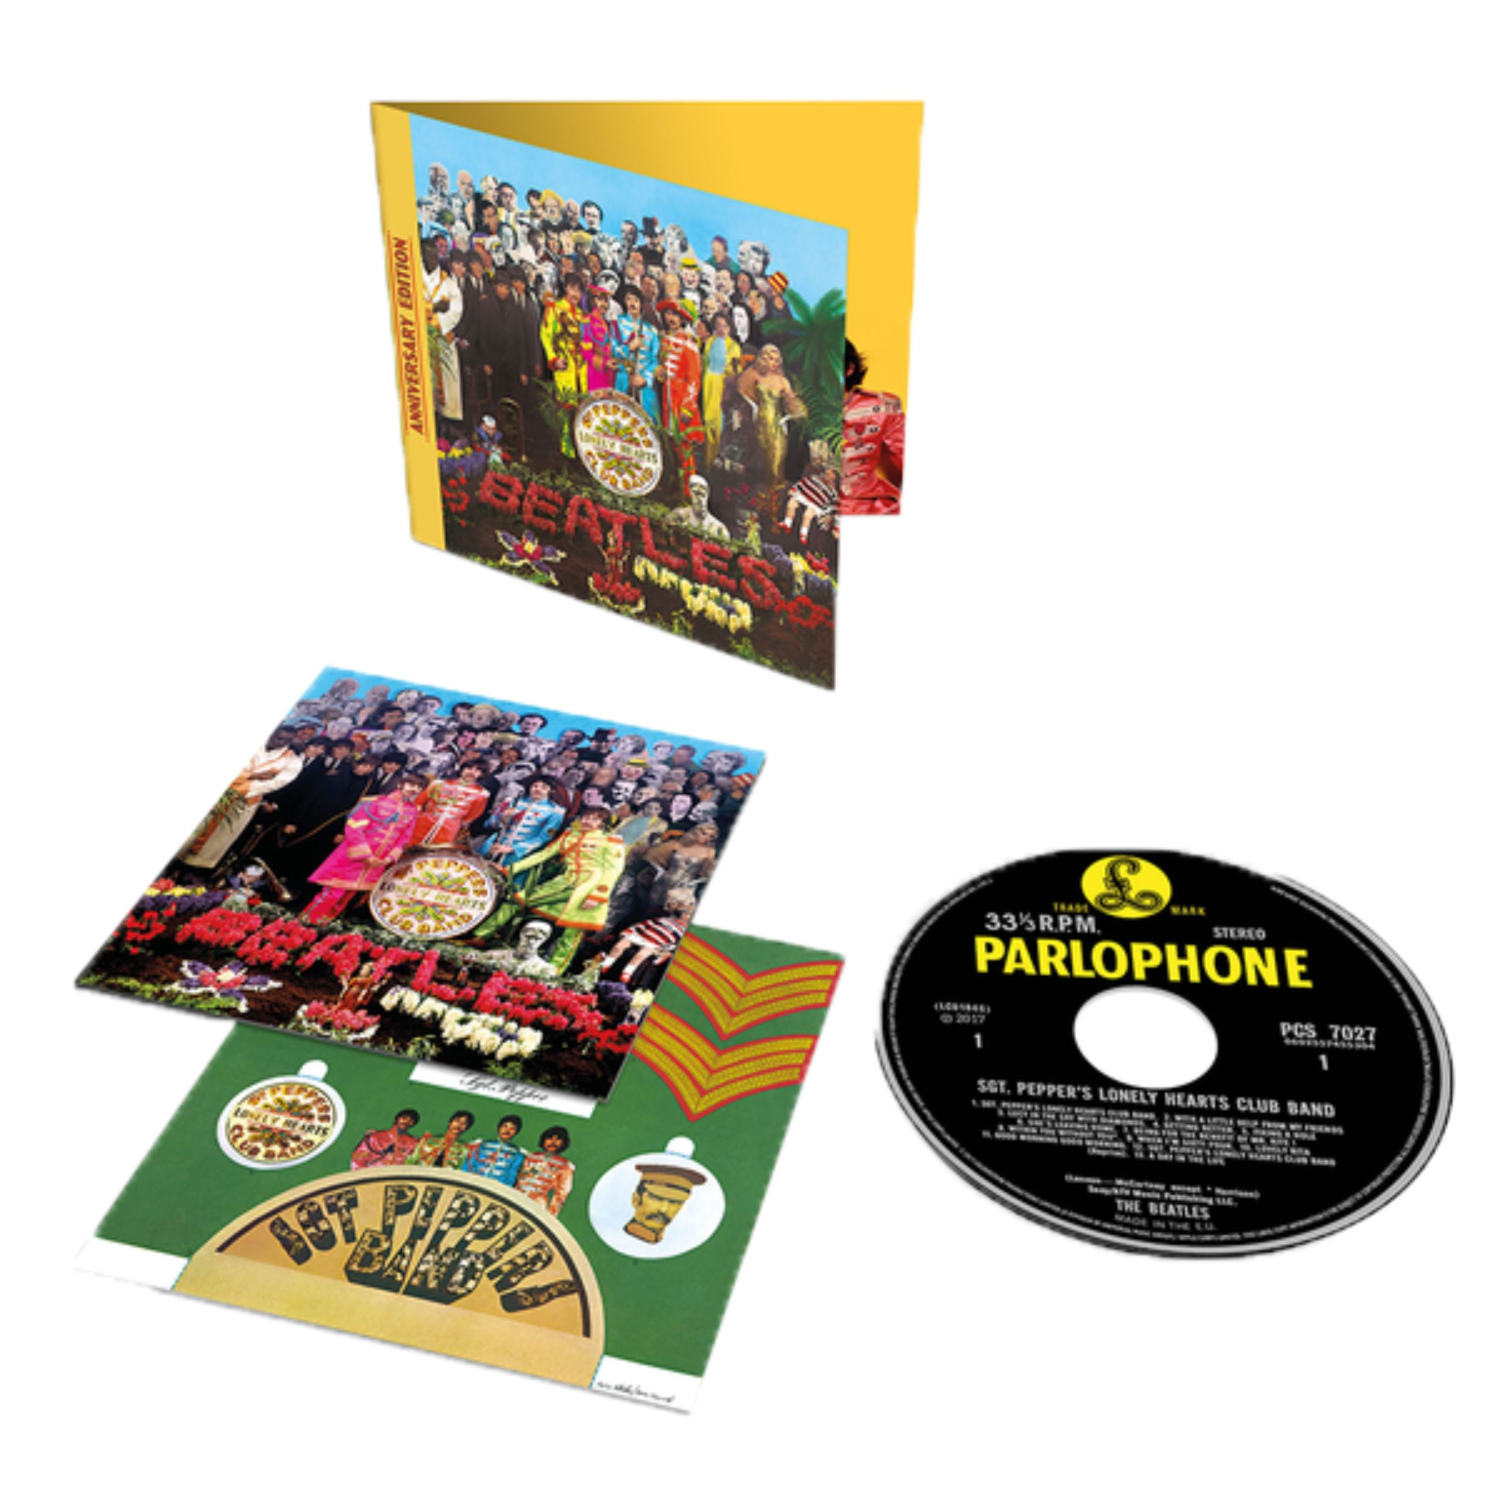 Sgt. Pepper's Lonely Hearts Club Band CD (Anniversary Edition)